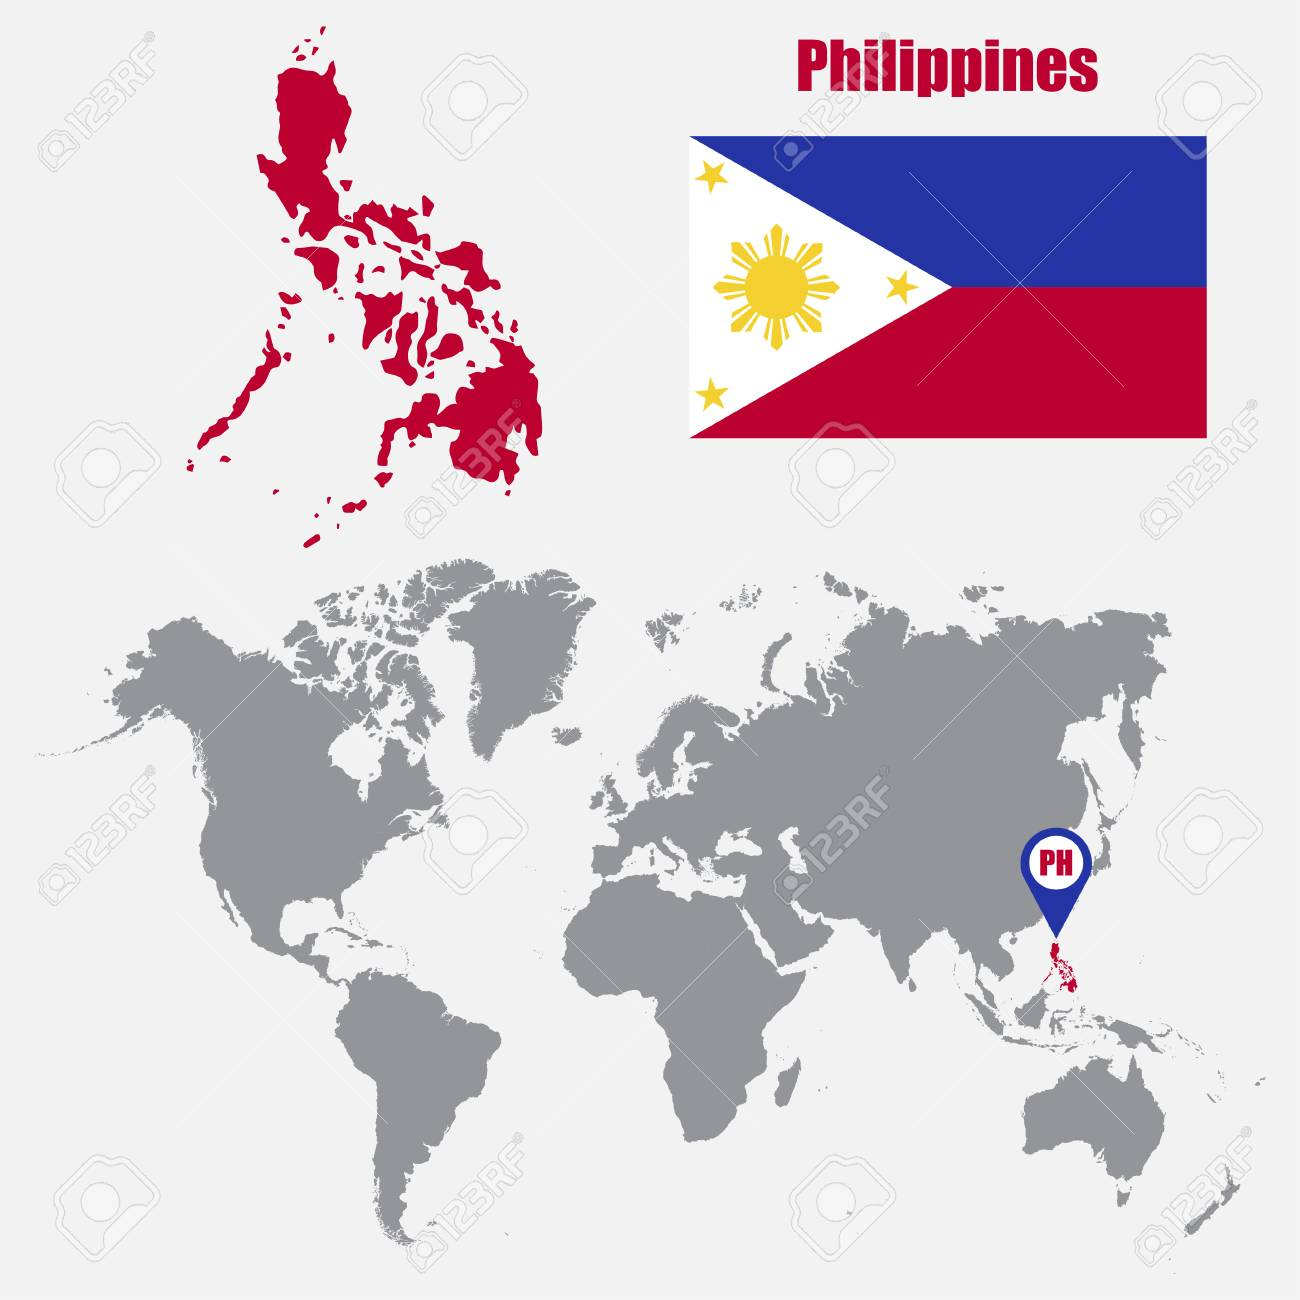 Philippines map on a world map with flag and map pointer. Vector.. on iloilo city philippines, how big is the philippines, typhoon ruby philippines, hong kong, weather philippines, globe philippines, world war 2 bacolod, history spanish colonization philippines, houses in the philippines, cities in philippines, country philippines, 100 islands philippines, southeast asia, quezon city philippines, chocolate hills bohol philippines, north korea, does the us own the philippines, boracay philippines, manila philippines, south africa, animals philippines, mindanao philippines, cebu philippines, baguio city philippines,